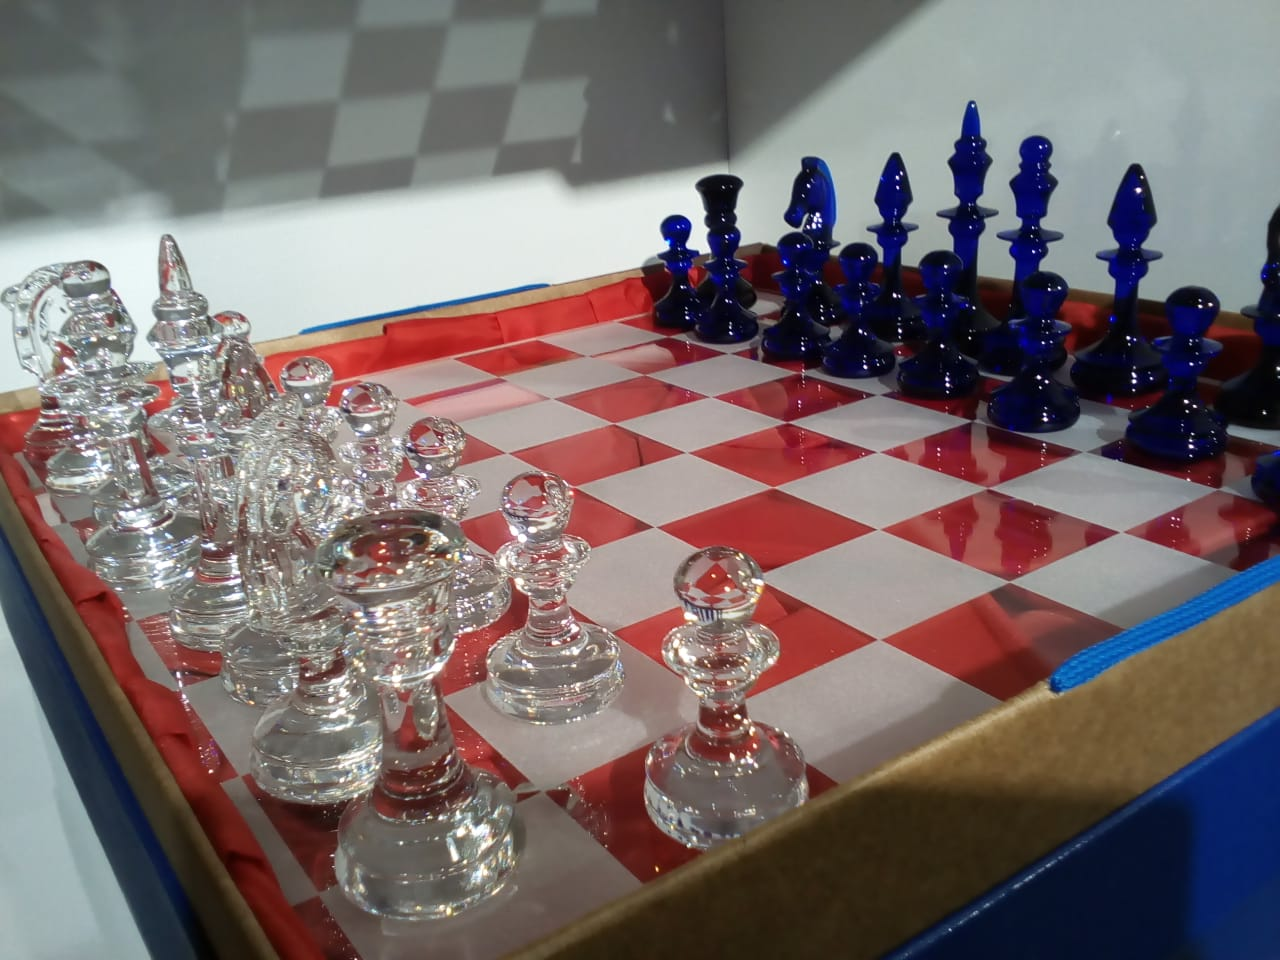 Crystal Chess